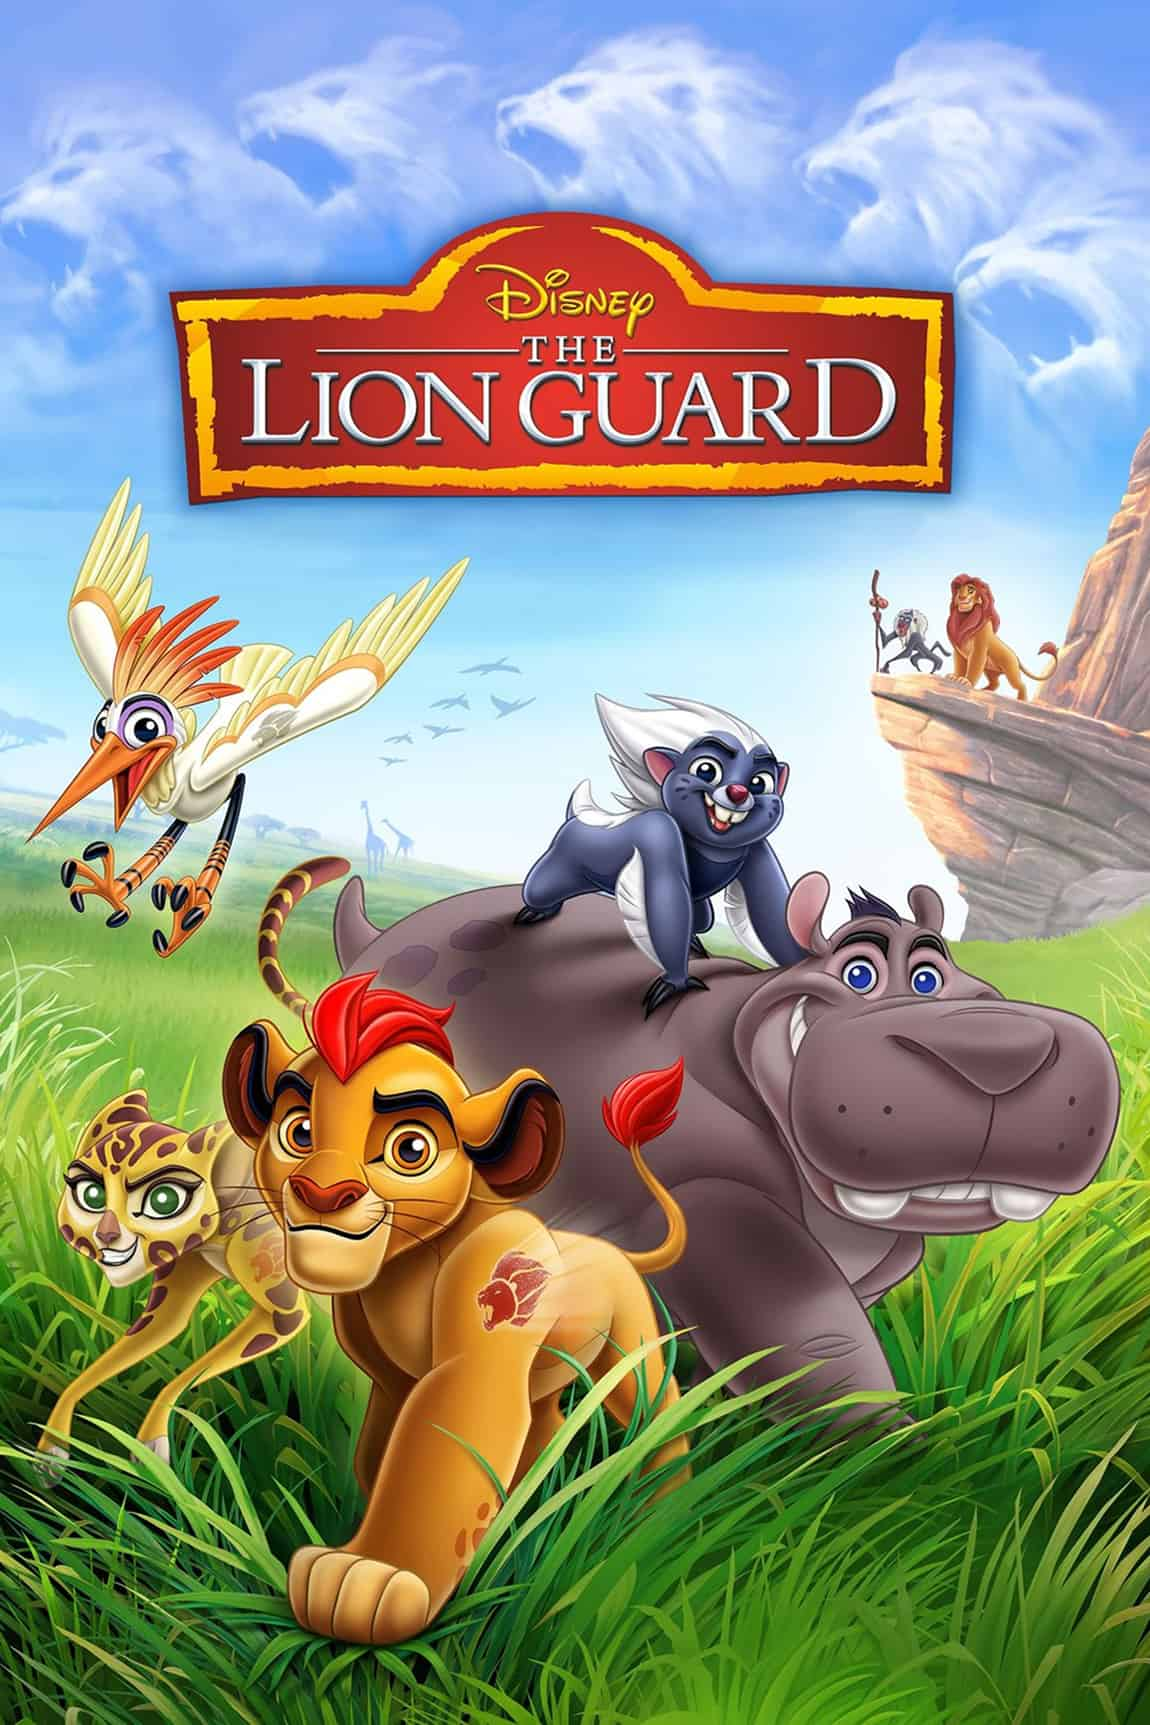 The Lion Guard, 2016